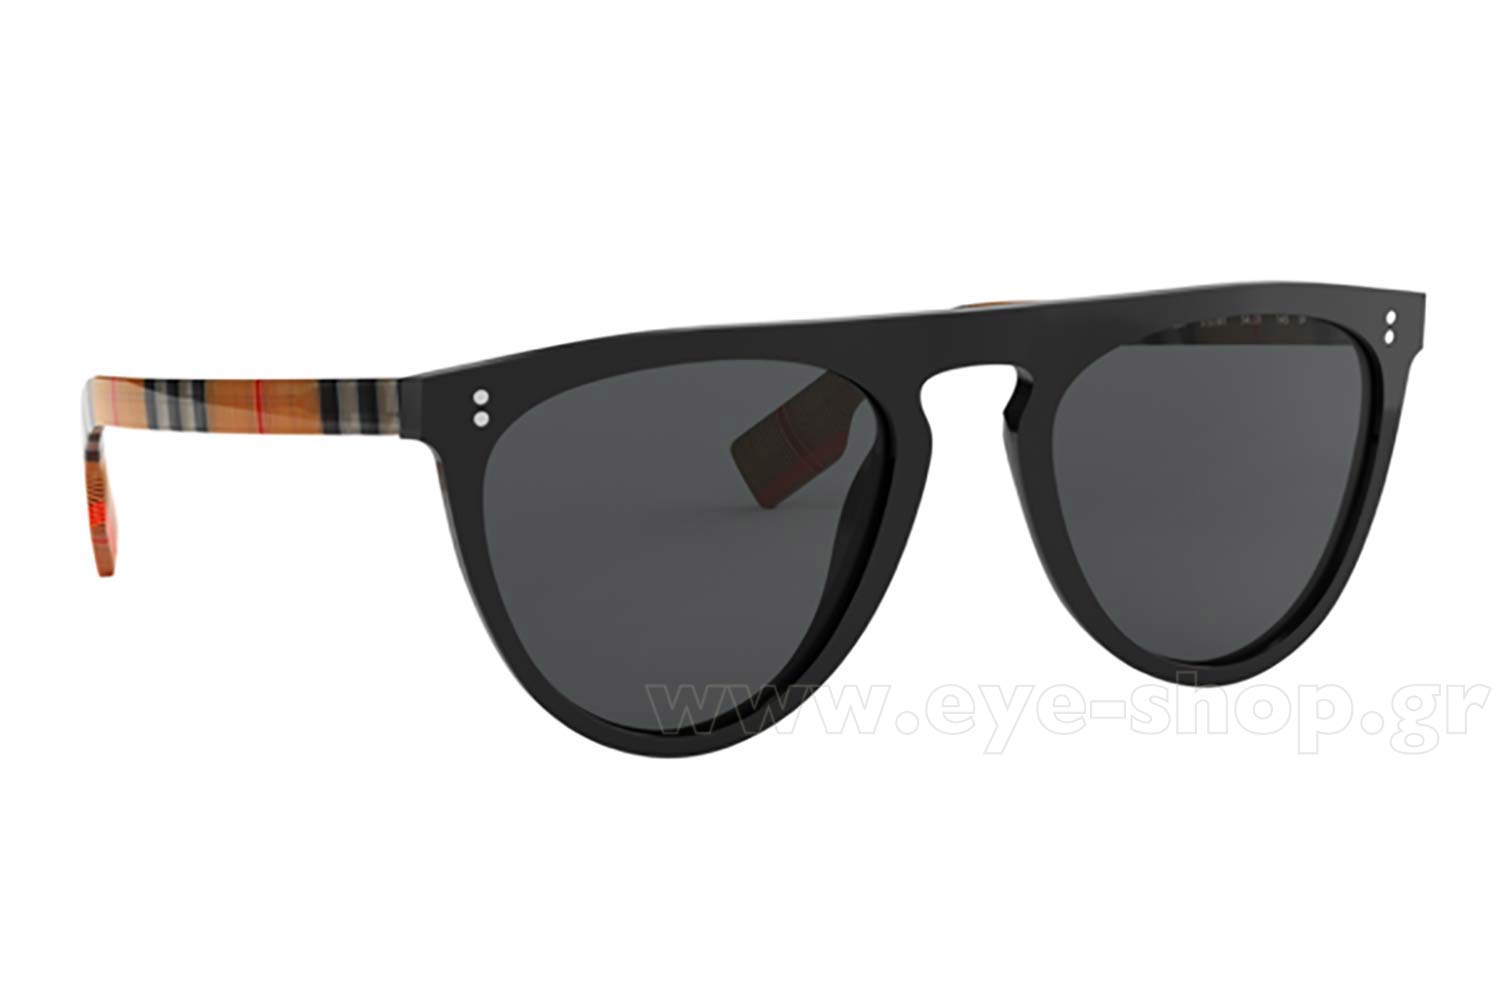 Γυαλιά Burberry 4281 375781 Polarized